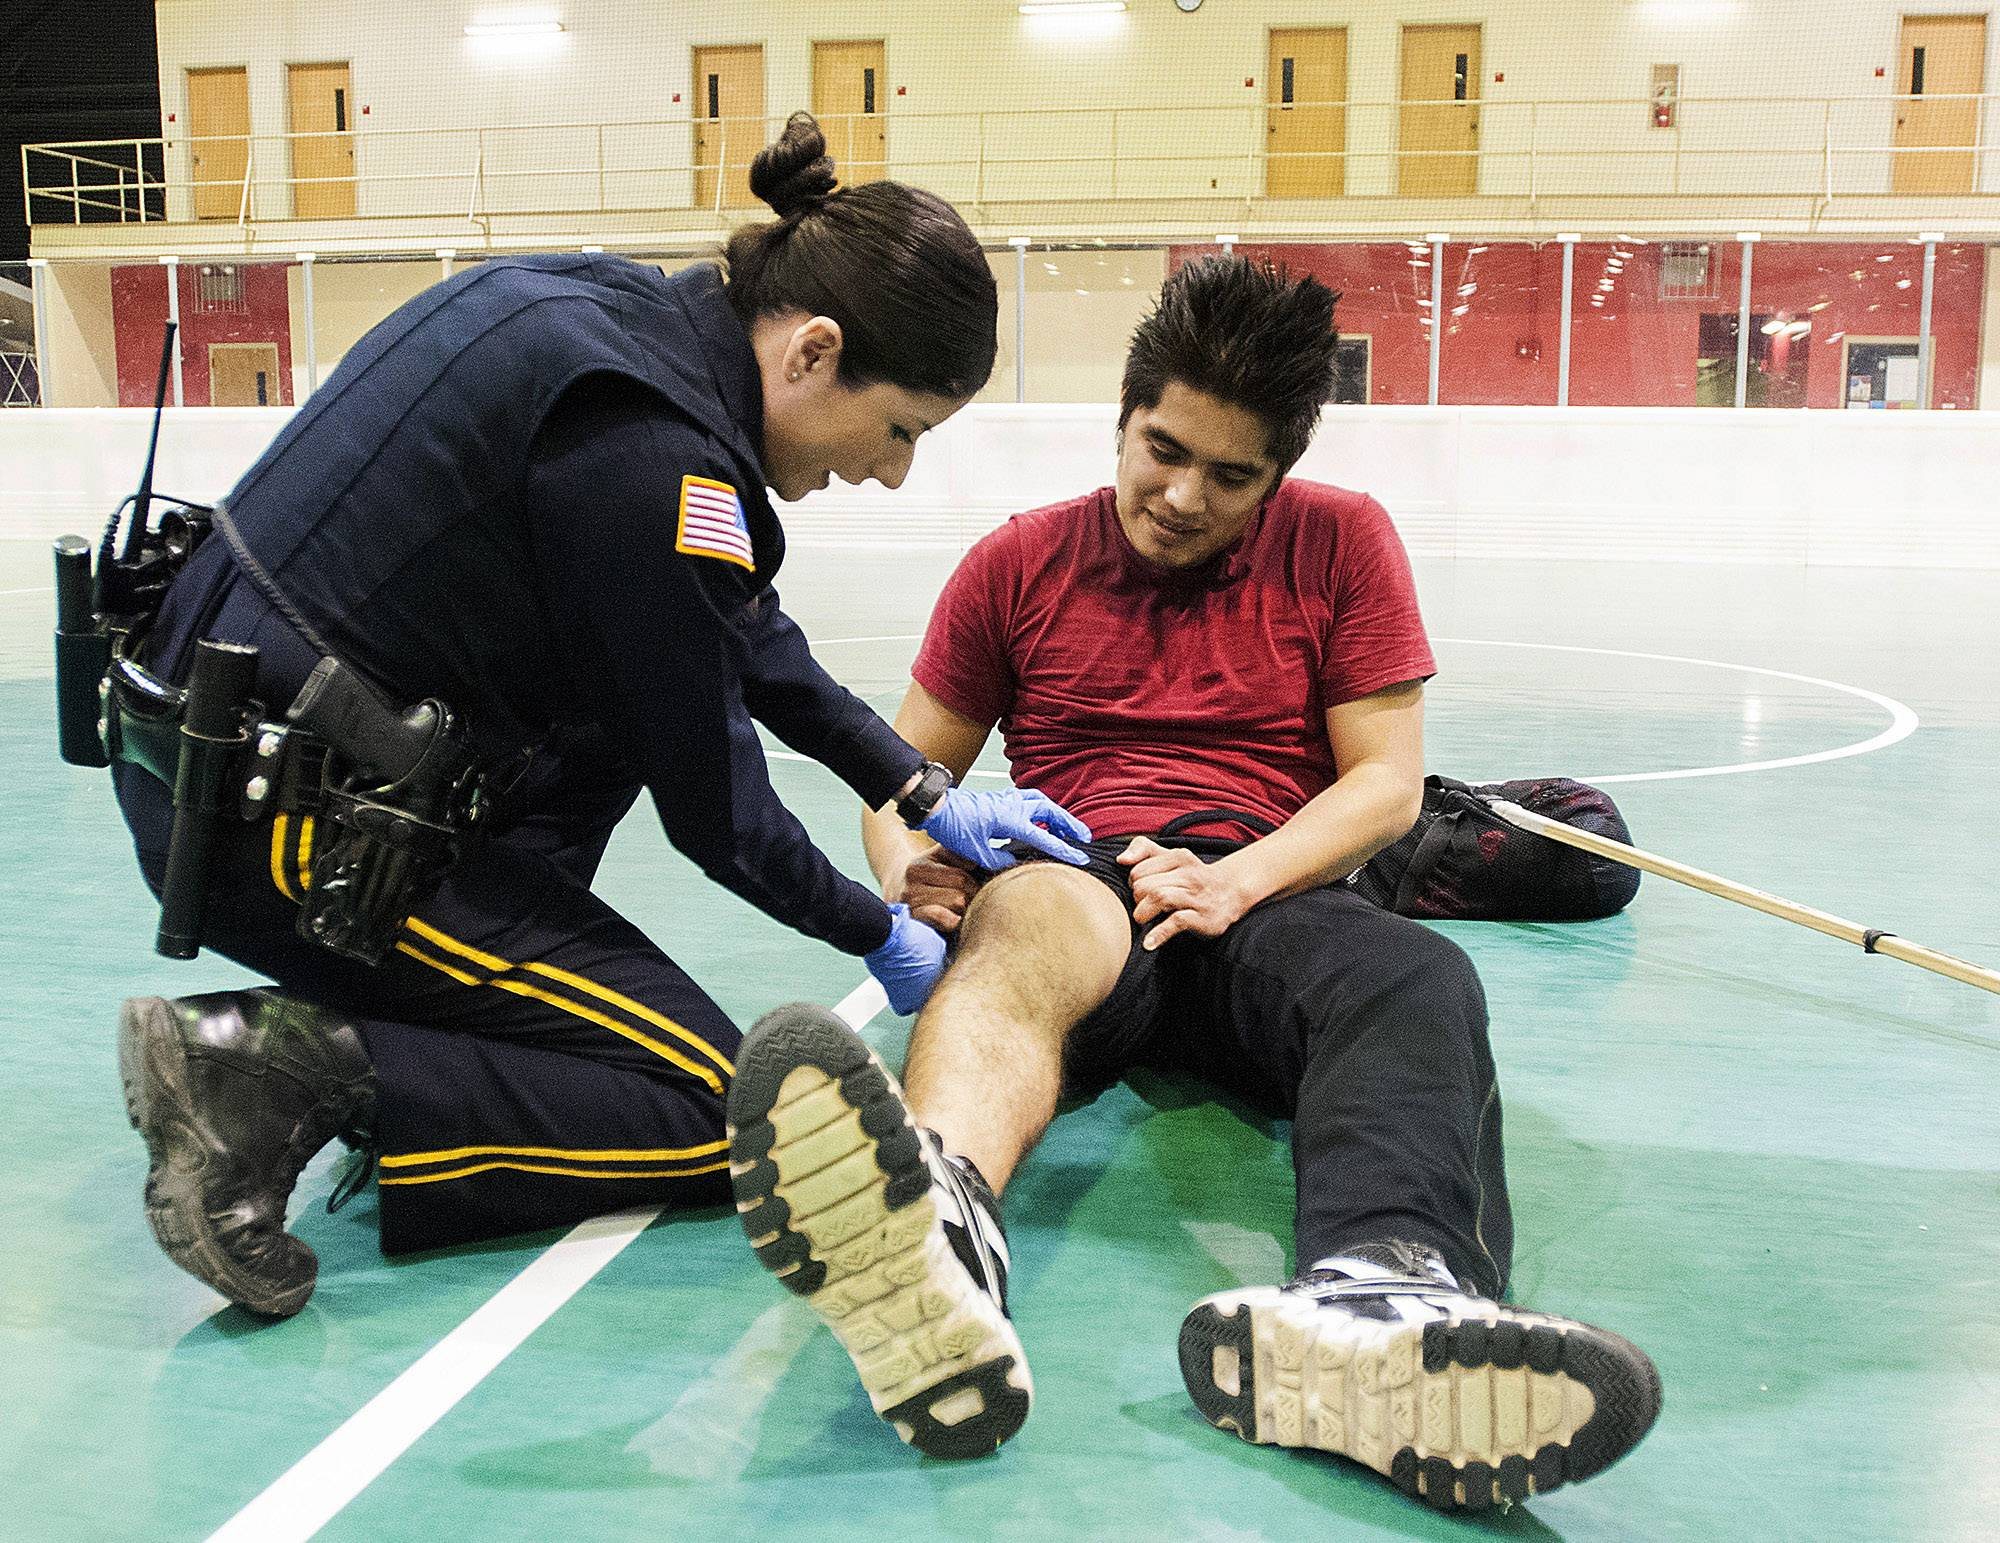 Northern Illinois University police officer Maria Christiansen checks on NIU senior Juan Martinez during a floor hockey game in April before calling paramedics to assist. Christiansen, a survivor of the Feb. 14, 2008, campus shooting, works the night shift on campus patrol.